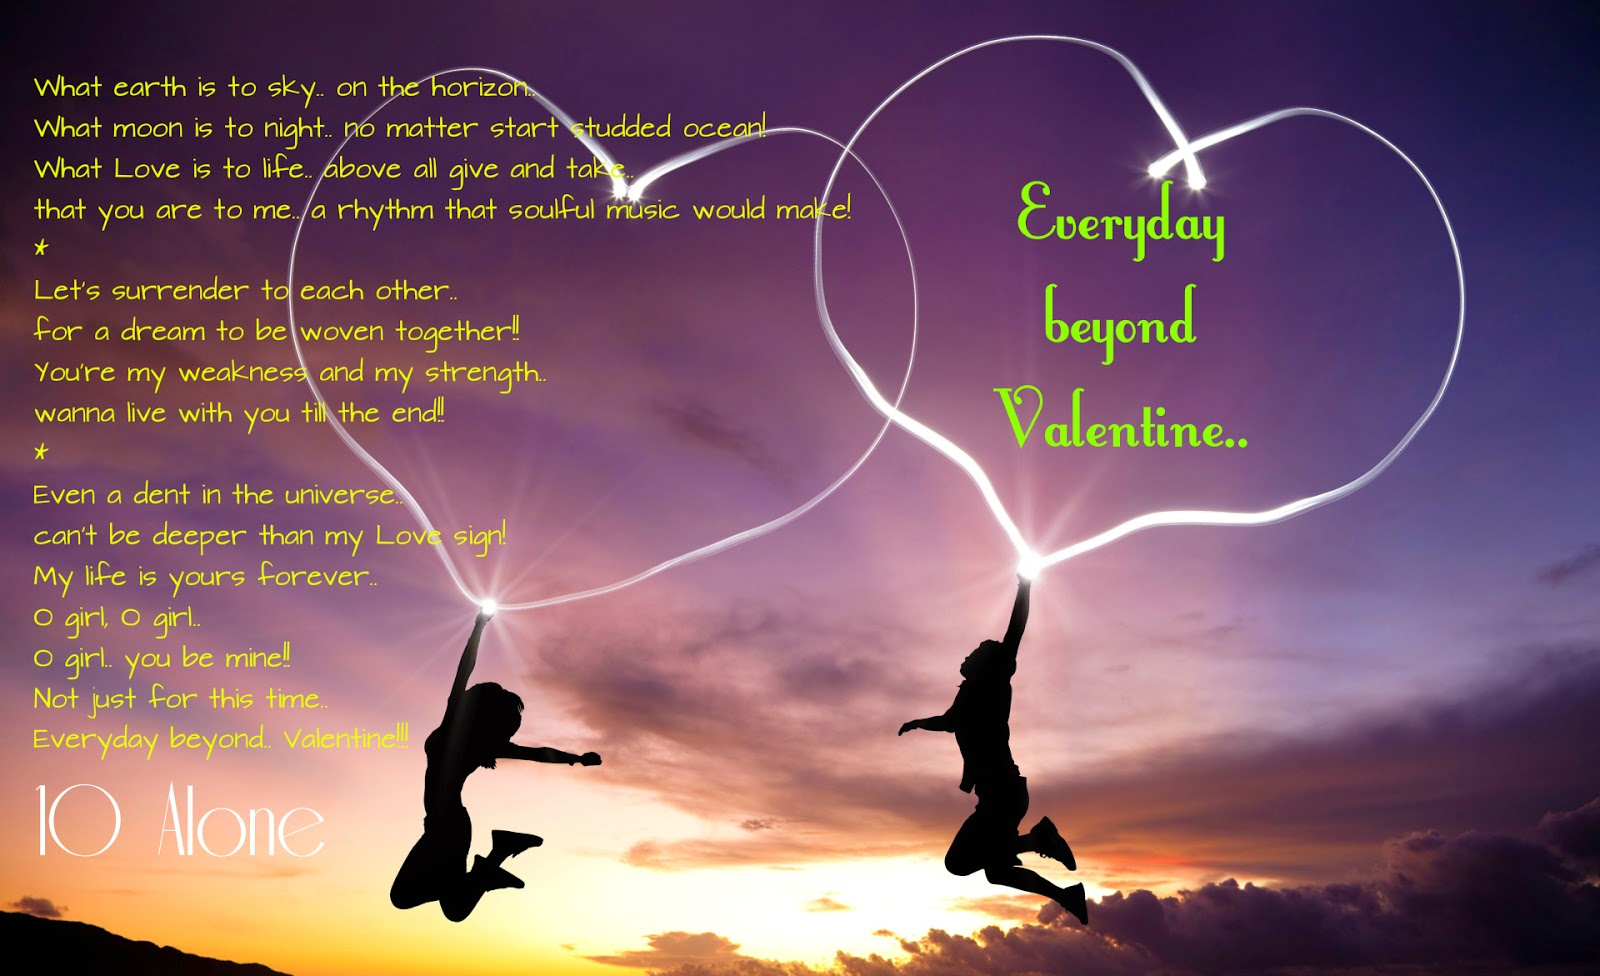 Everyday-beyond-Valentine--Lovely-VDay-Week-Poem-14Feb-Day-Rose-Propose-Chocolate-Teddy-Promise-Hug-Kiss-Vikrmn-10alone-ca-vikram-verma-chartered-accountant